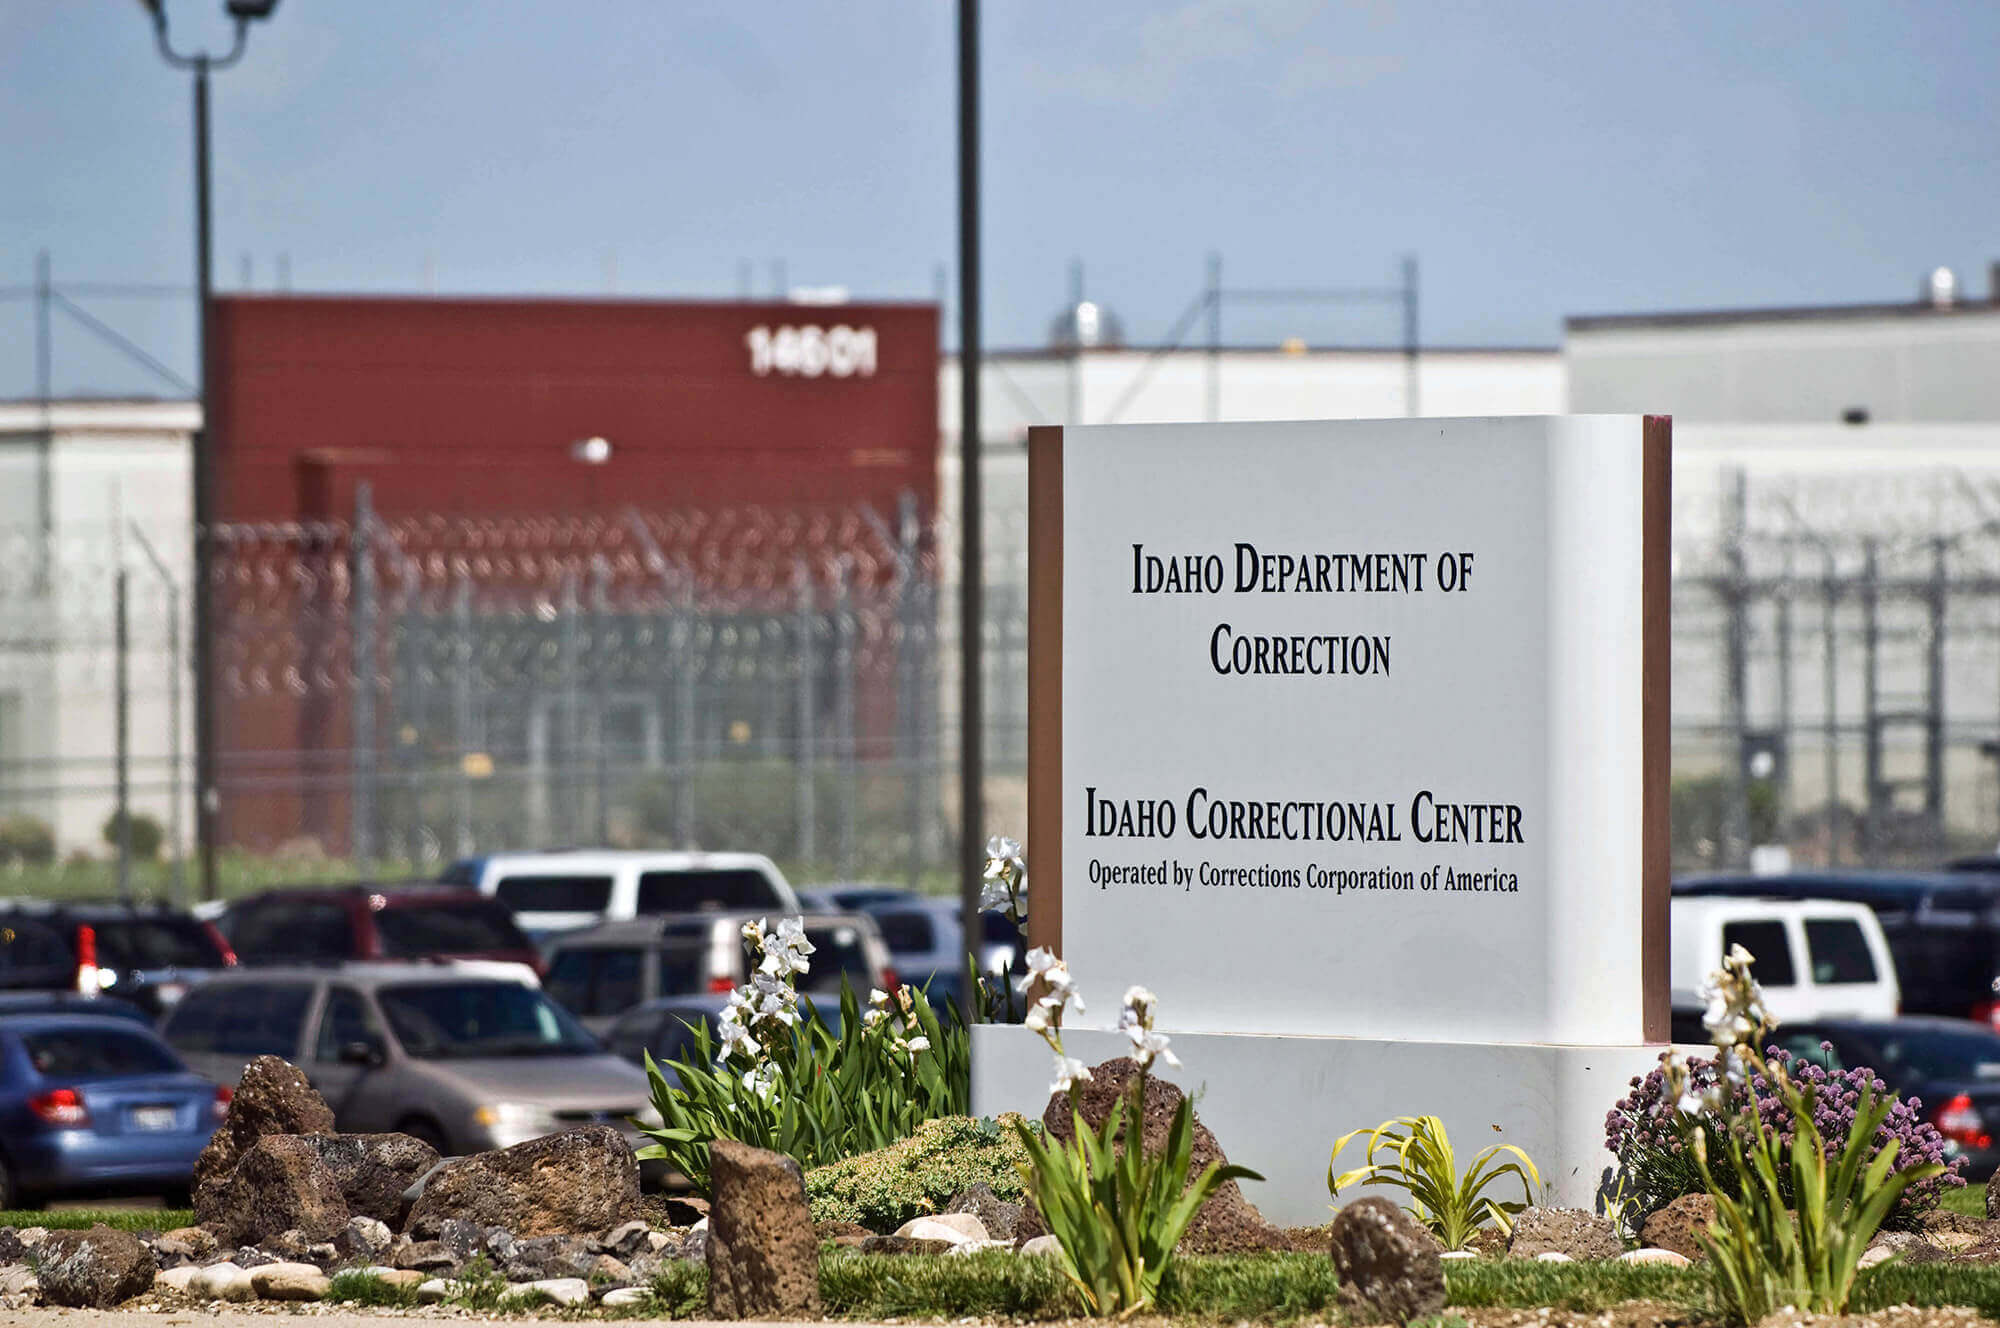 Image of Idaho Correctional Center, Boise Idaho